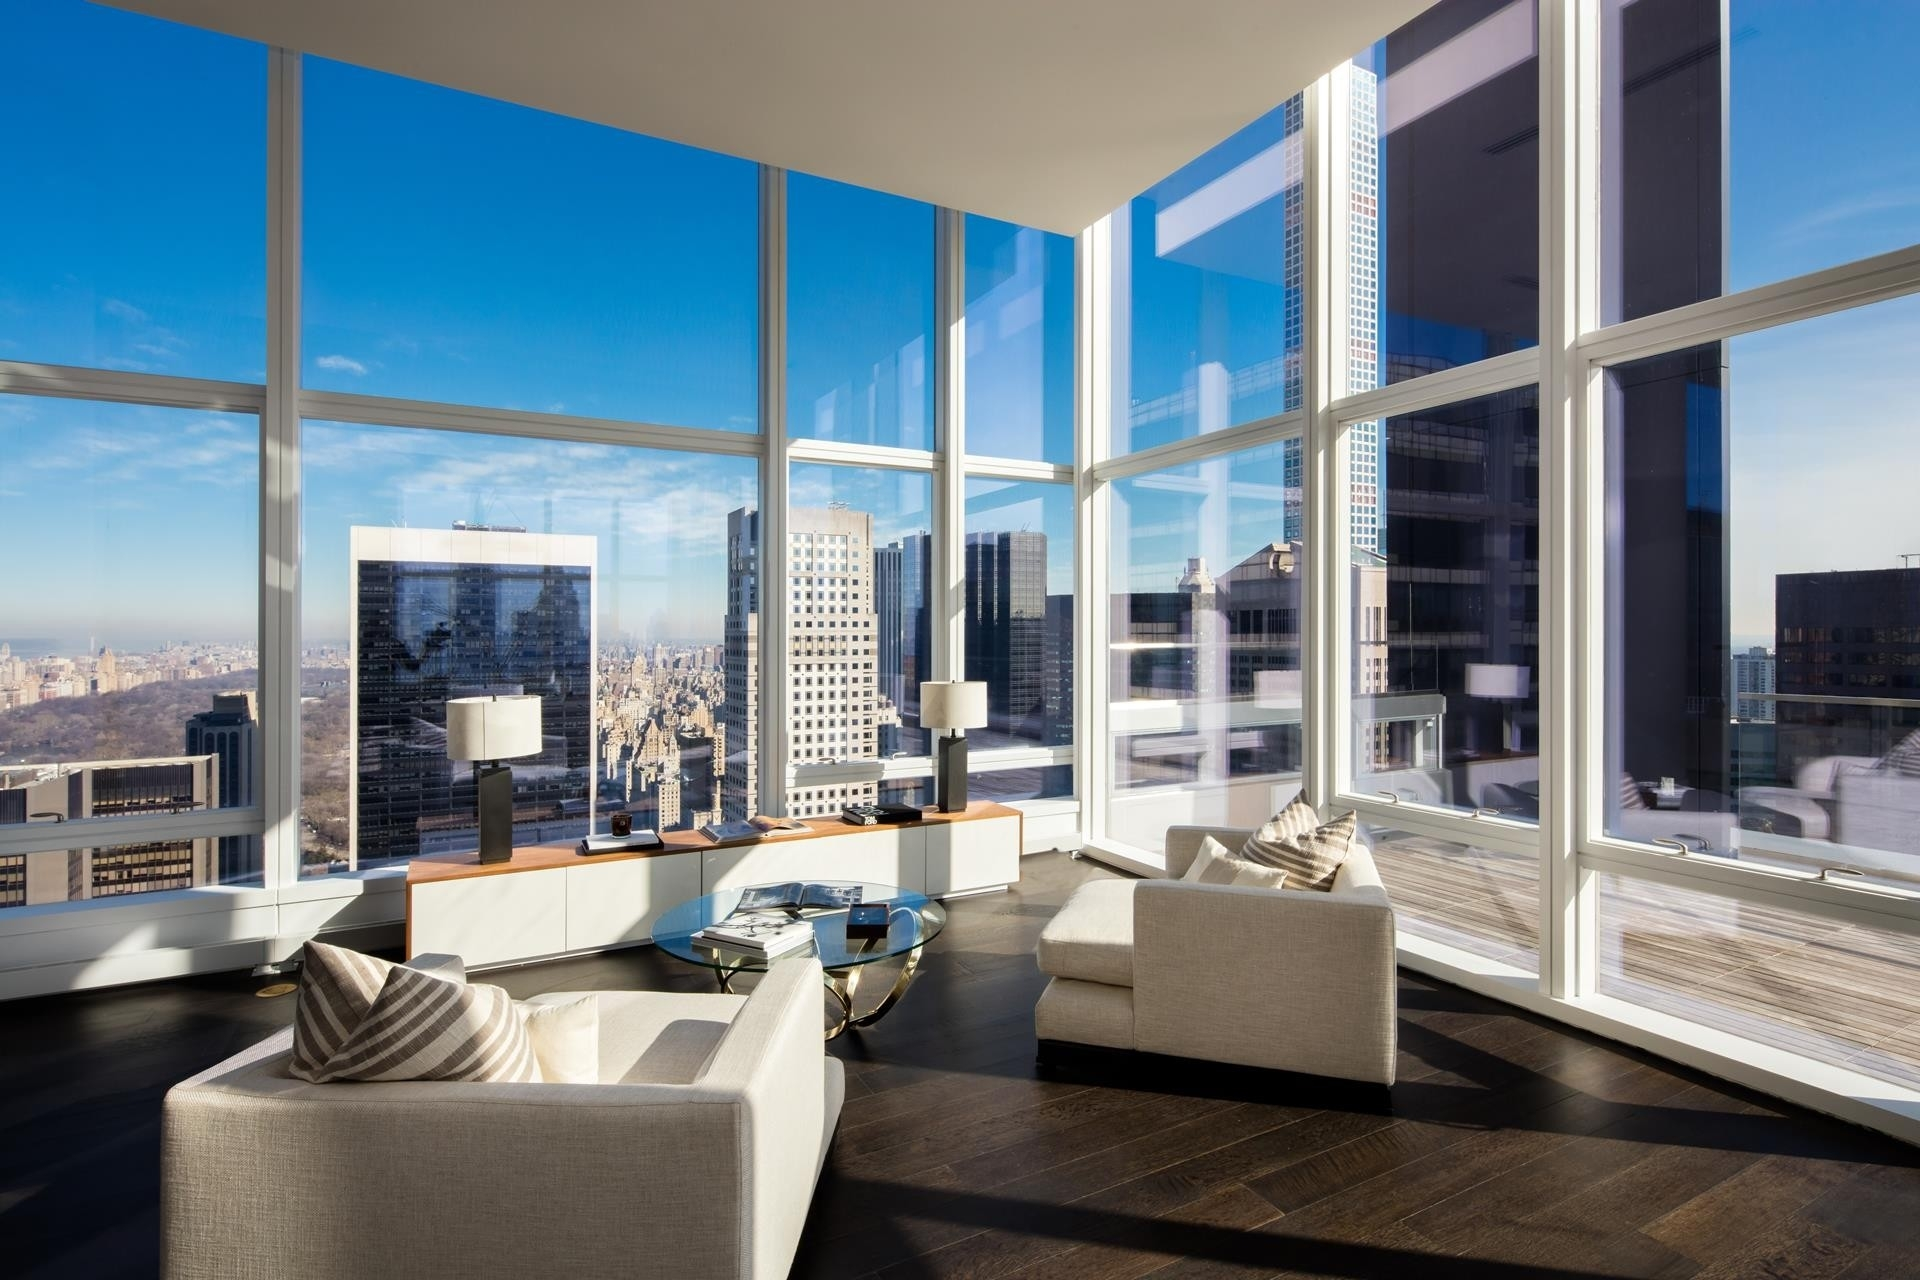 4. Condominiums for Sale at BACCARAT HOTEL & RESIDENCES, 20 West 53rd St, PH48/49 Midtown West, New York, NY 10019